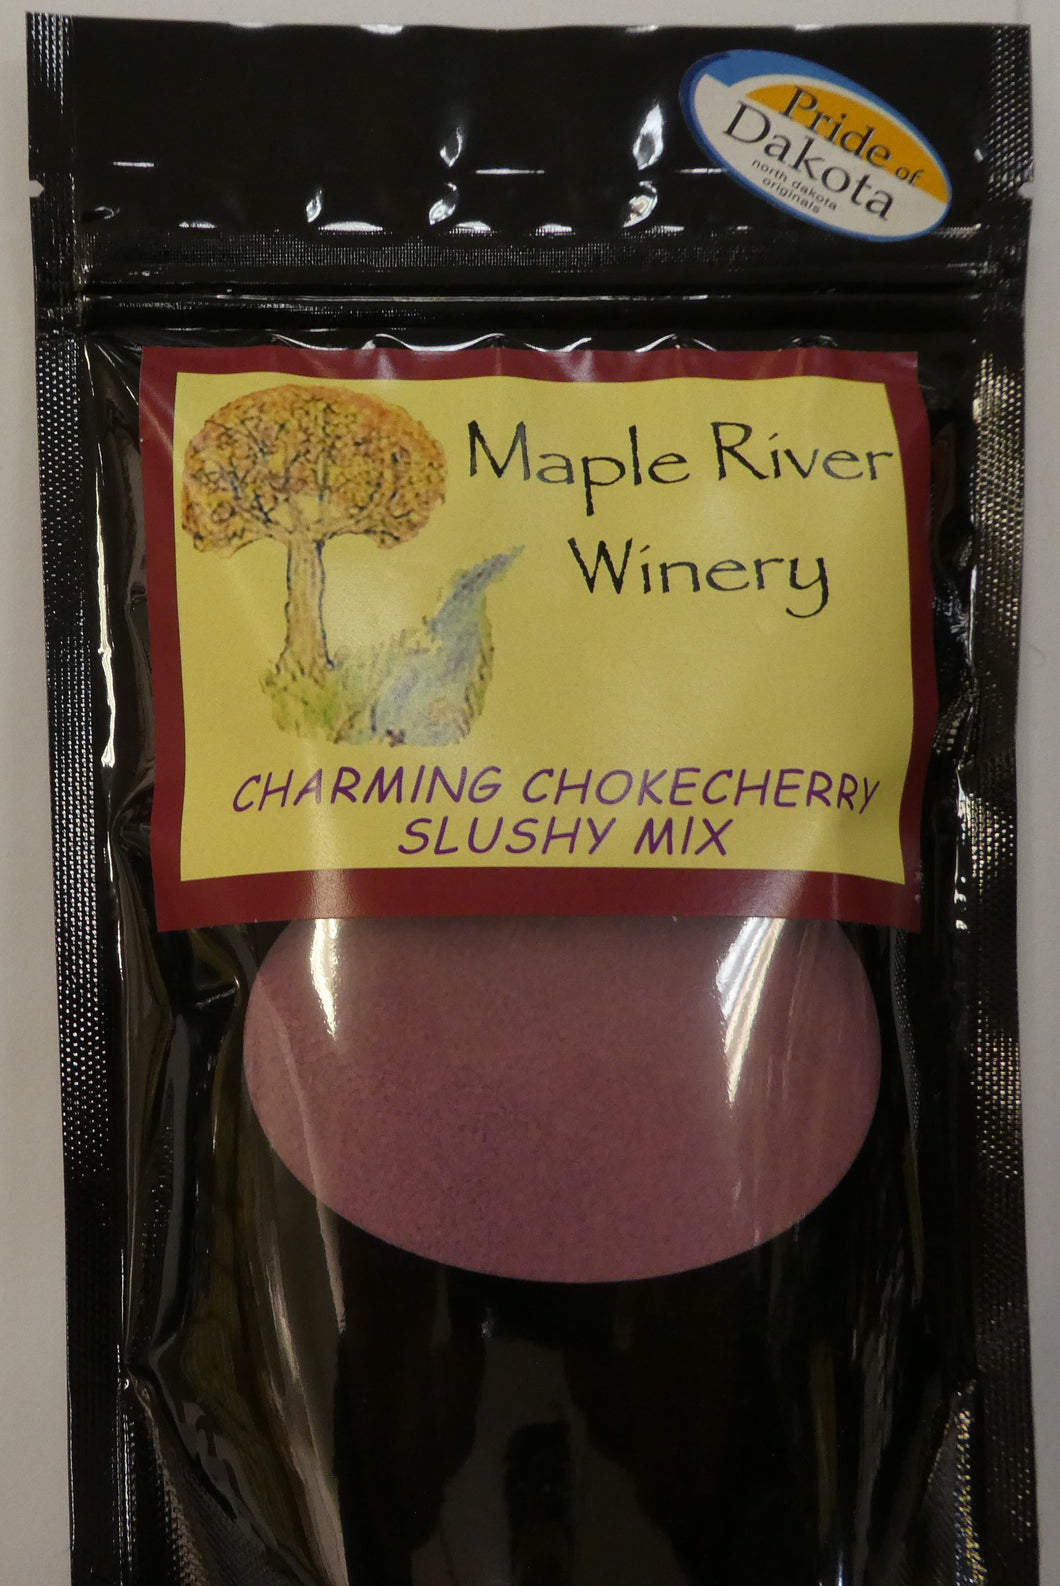 Charming Chokecherry Wine Slushy Mix and Slushy Pie Mix